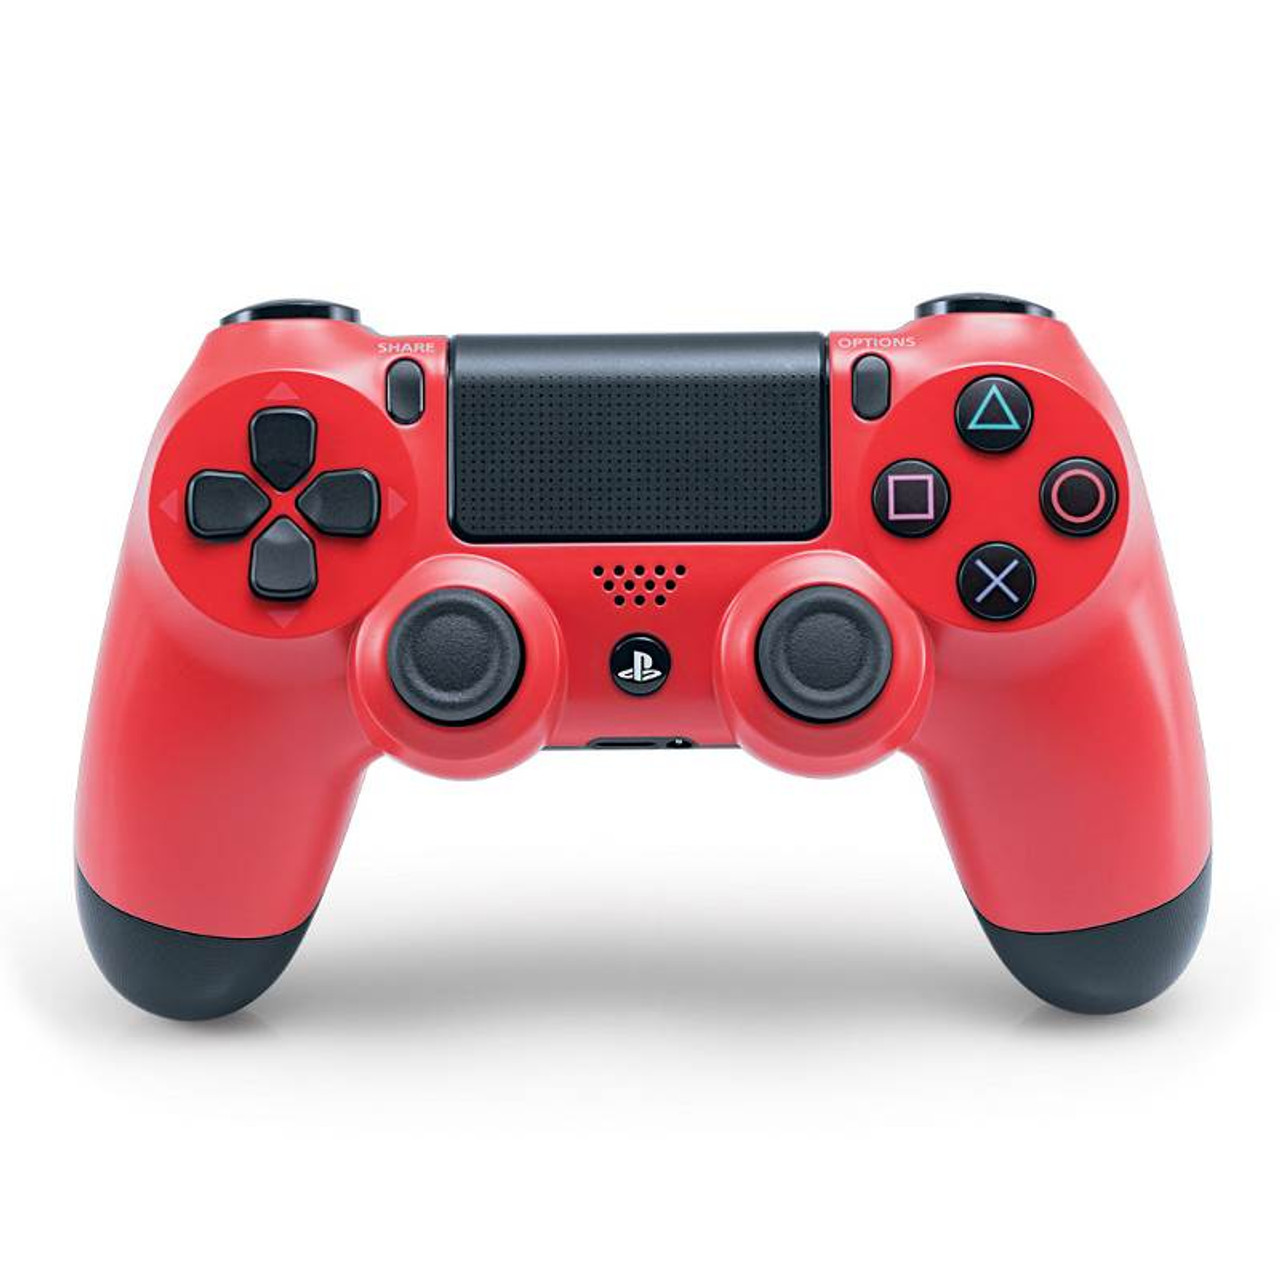 Image for Sony Playstation 4 Genuine Wireless Dualshock 4 Controller - Magma Red CX Computer Superstore